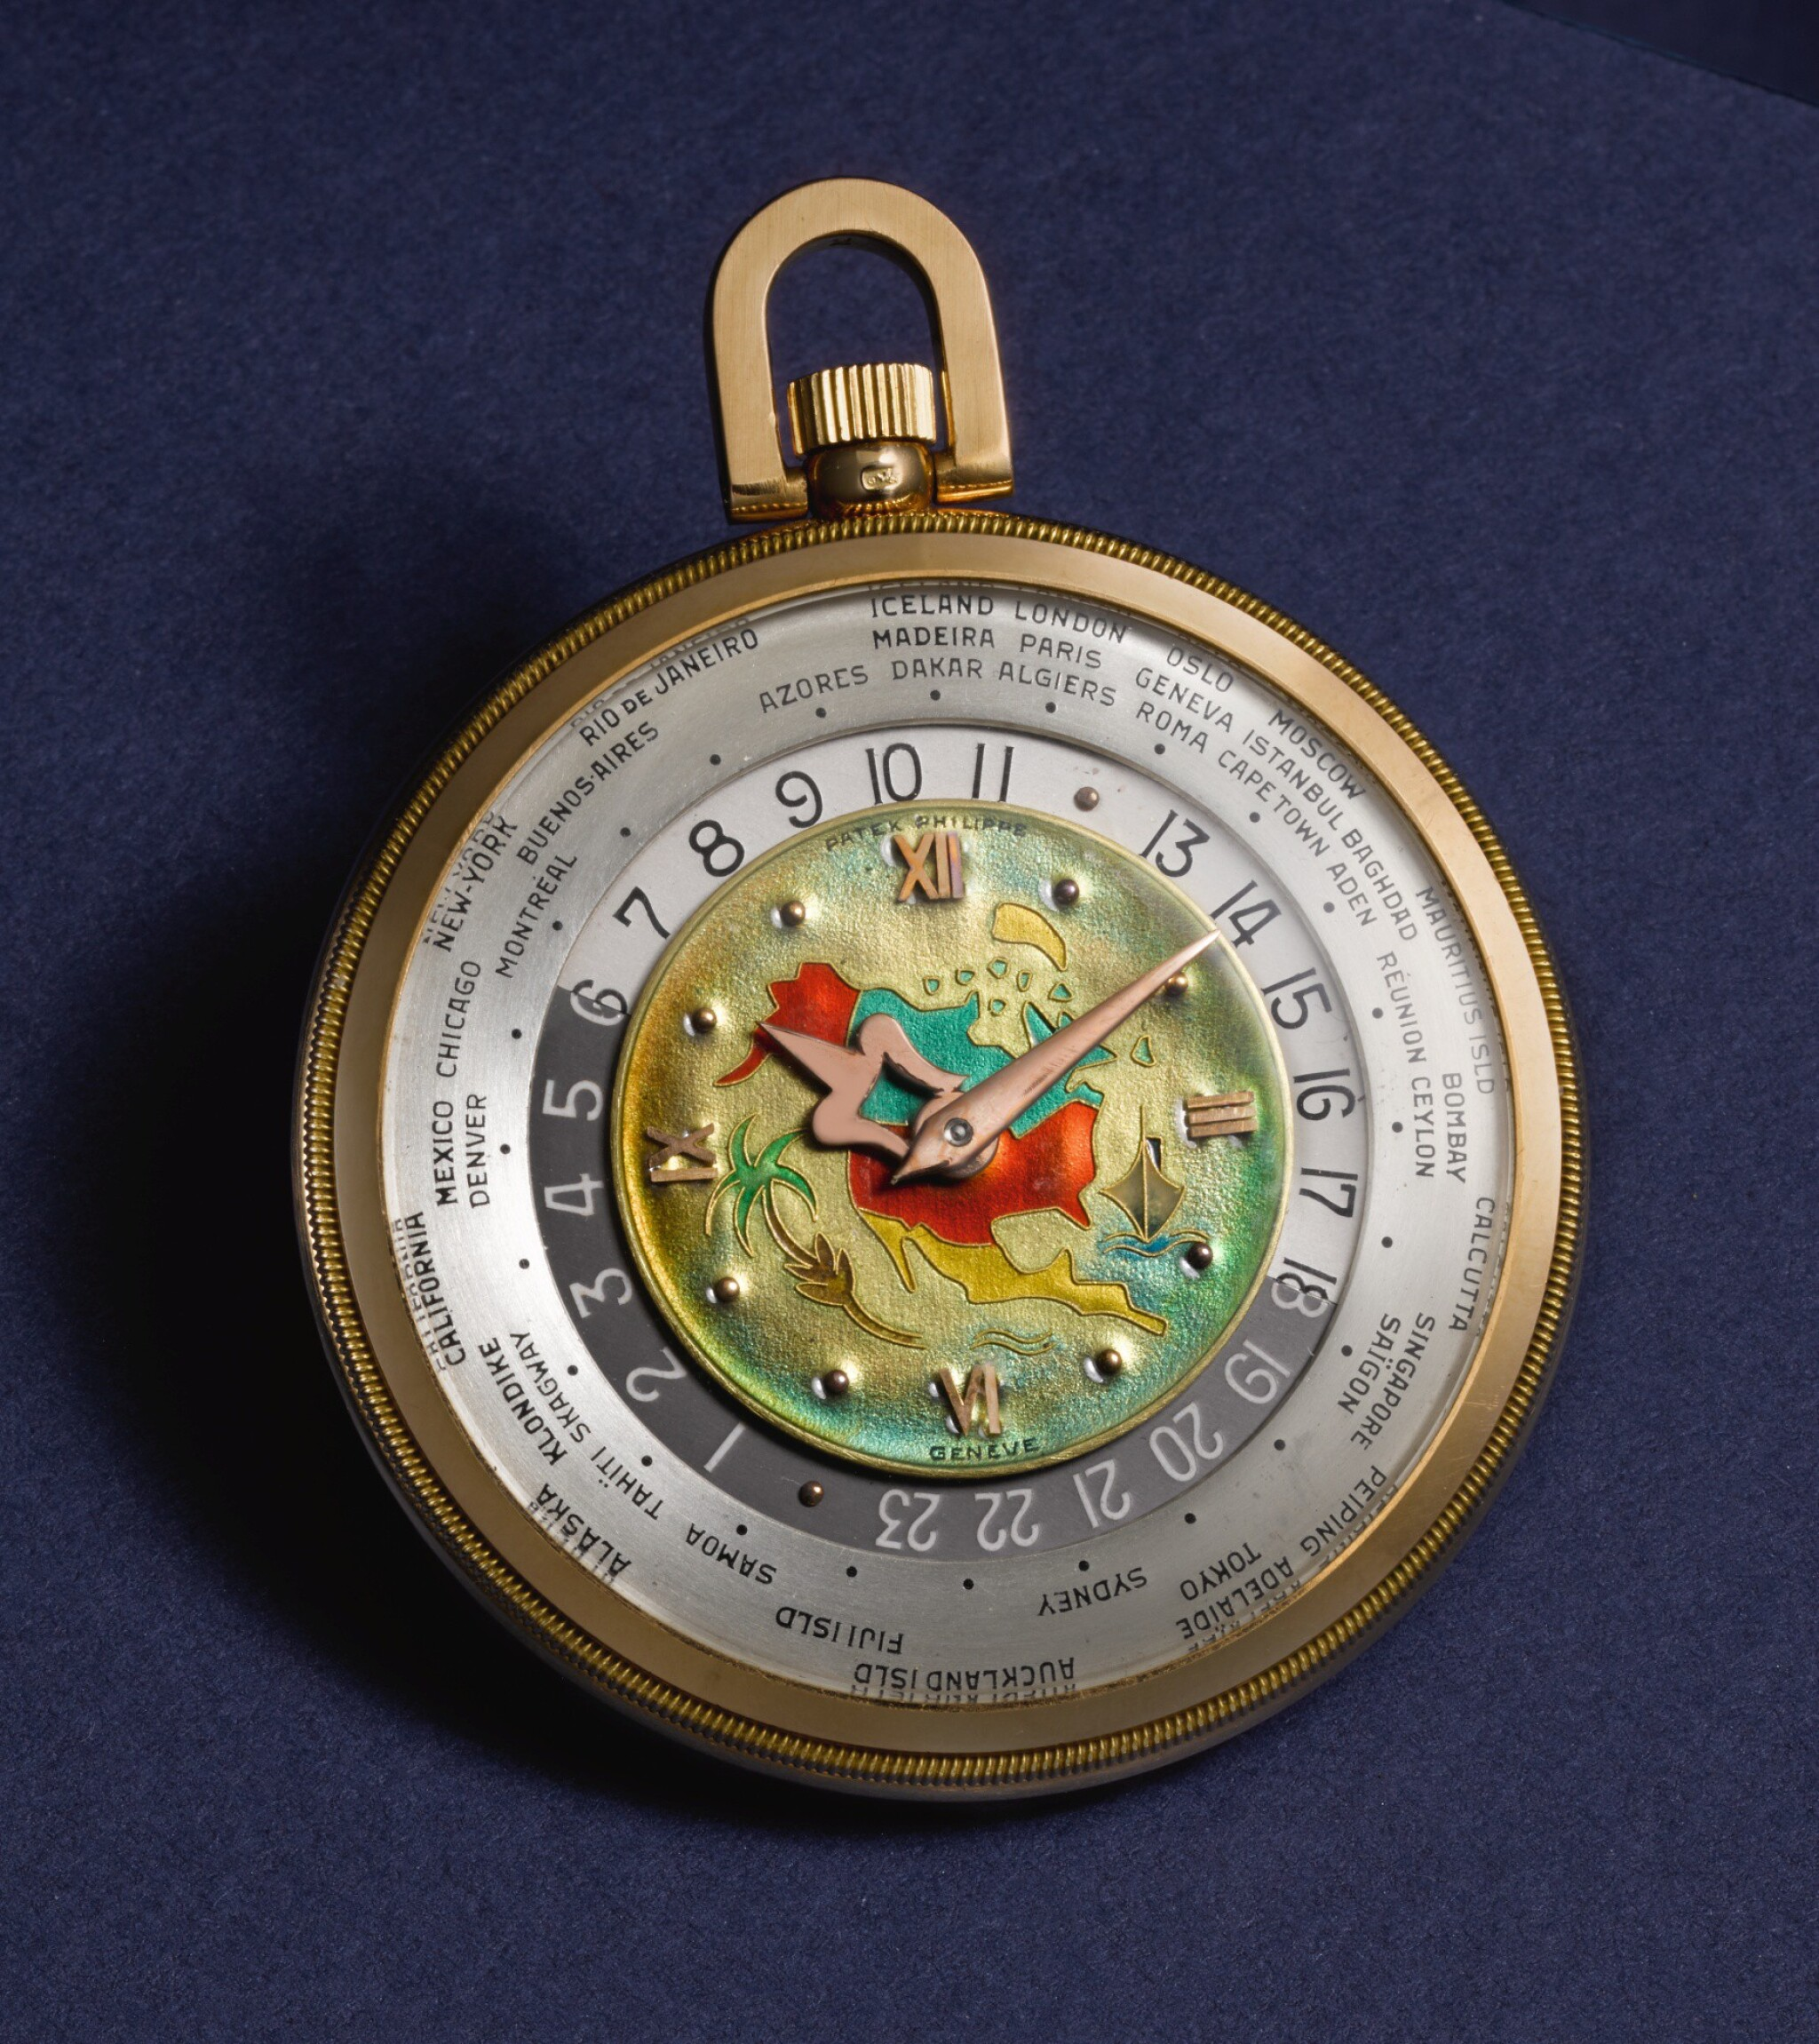 View full screen - View 1 of Lot 126. PATEK PHILIPPE & CO., GENÈVE [百達翡麗,日內瓦] | AN EXTREMELY FINE AND RARE PINK GOLD OPEN-FACED KEYLESS LEVER WORLD TIME WATCH WITH CLOISONNÉ ENAMEL MAP OF NORTH AMERICA 1948, REF. 605 HU, MOVEMENT NO. 930.864, CASE NO. 654.949 [605HU型號極罕有粉紅金世界時間懷錶飾掐絲琺瑯彩繪北美洲地圖,1948年製,機芯編號930.864,錶殼編號654.949].